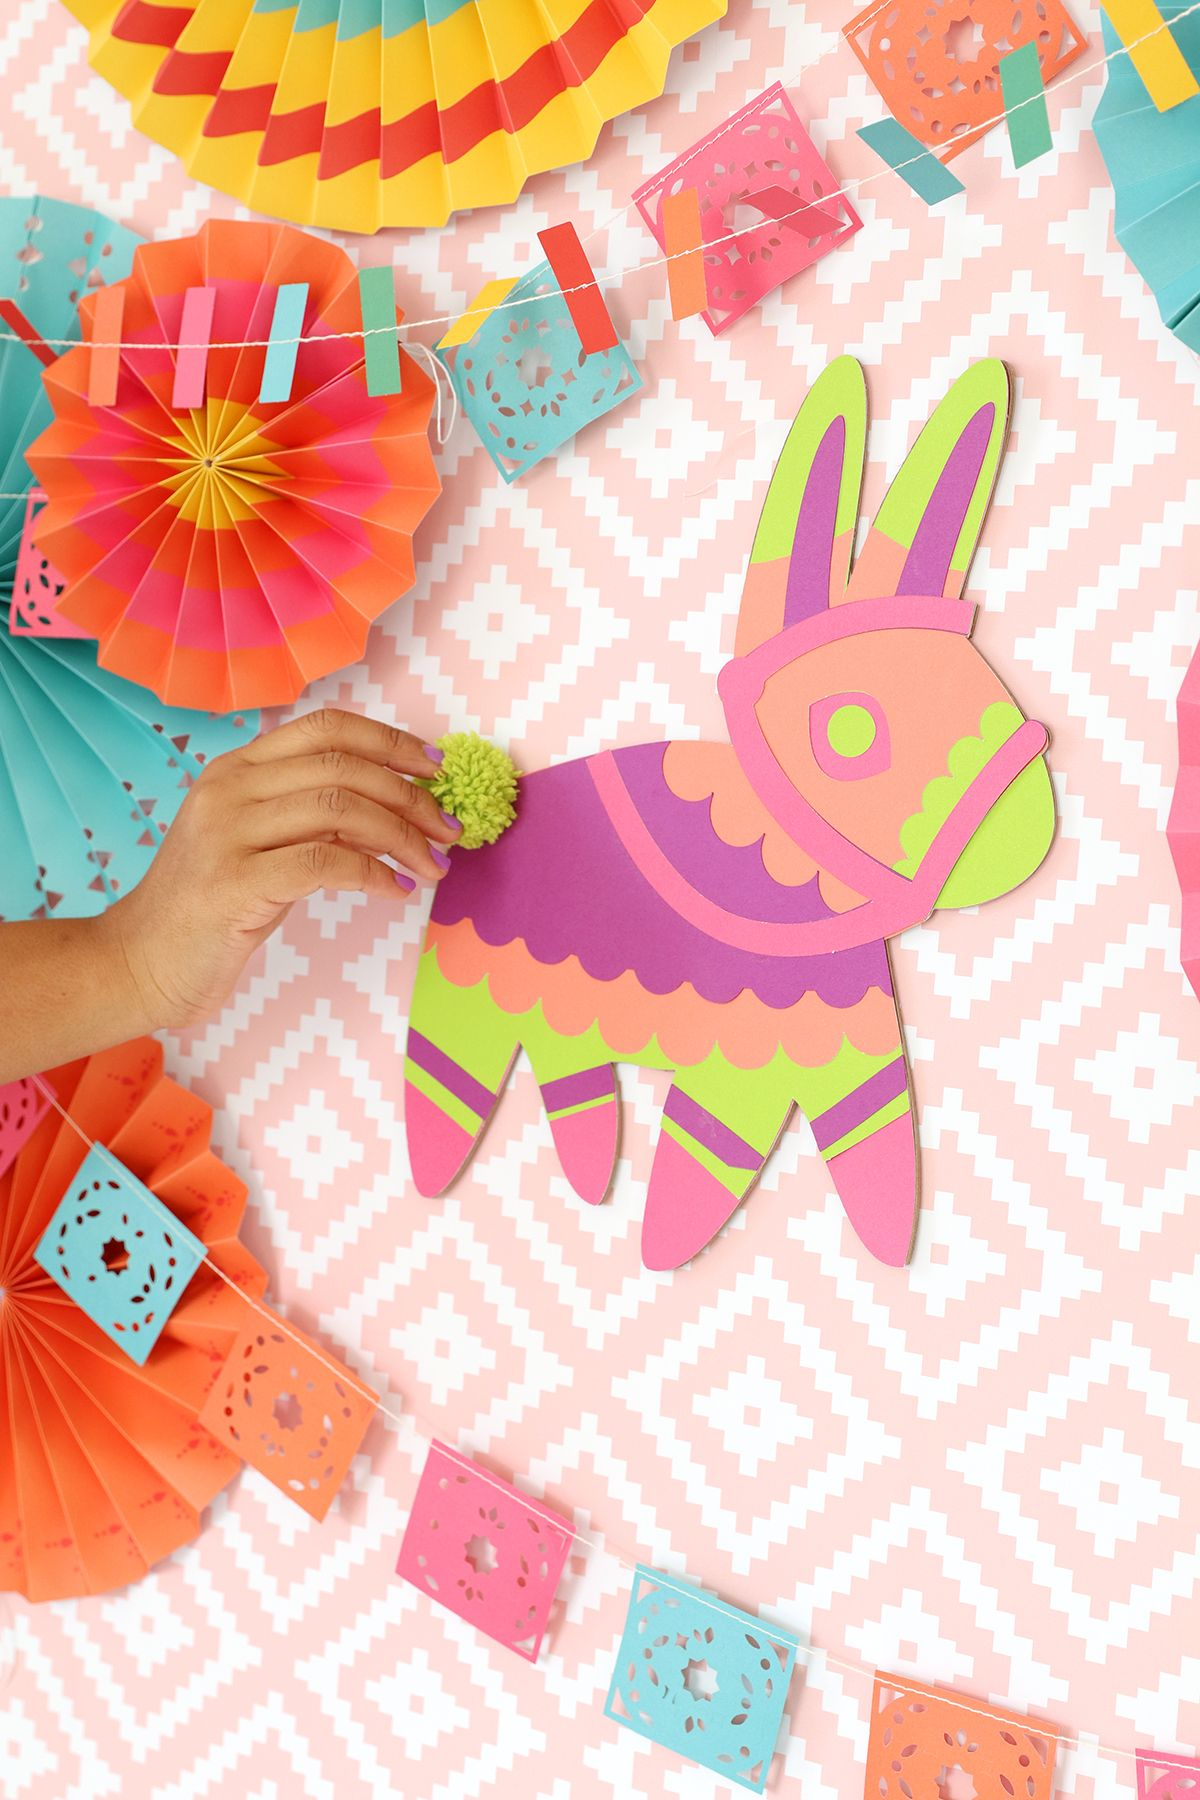 Diy Pin The Tail On The Pinata  Damask Love